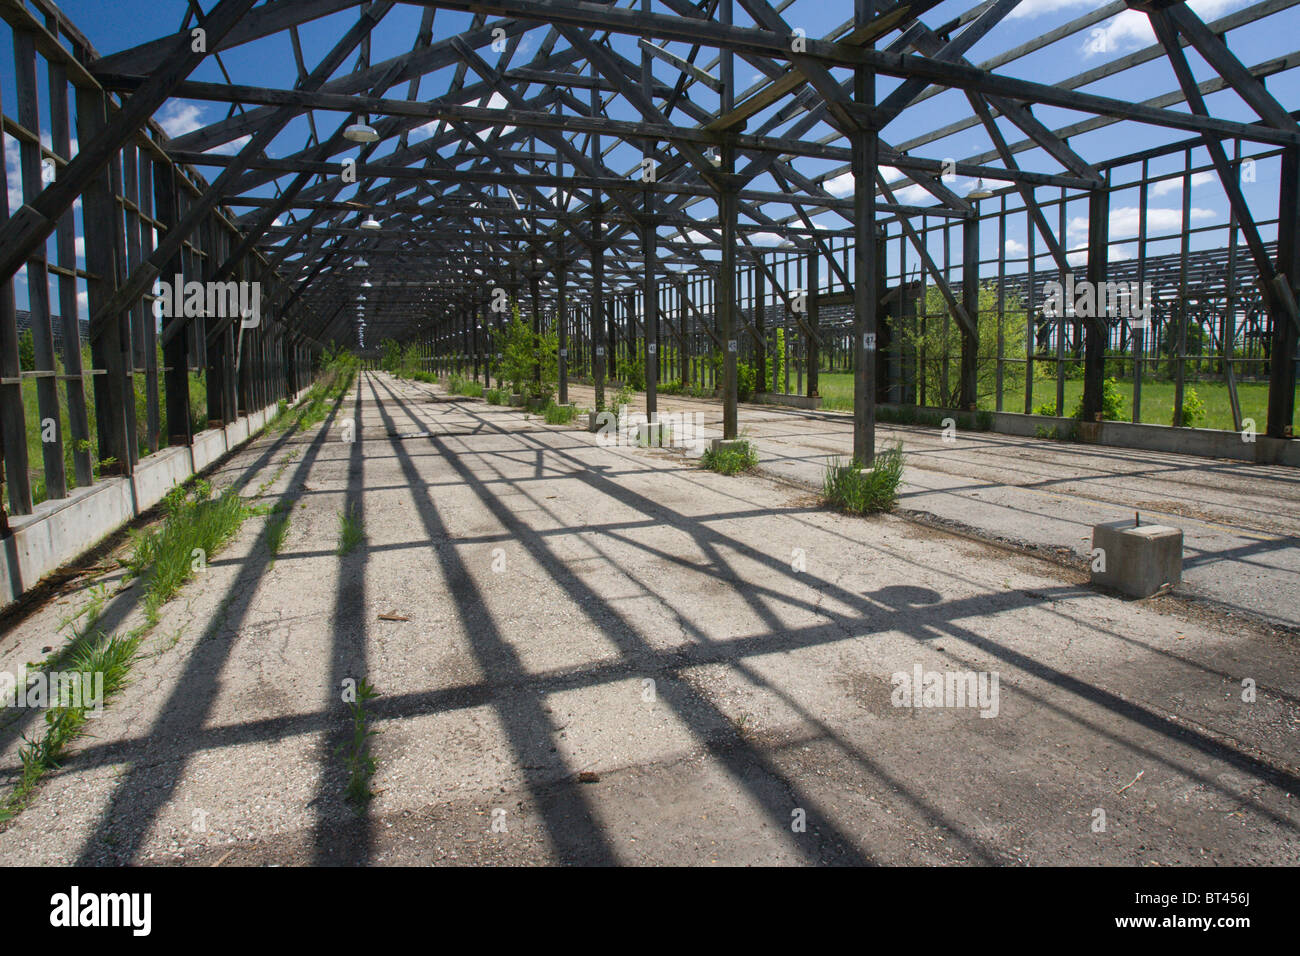 Remnants of a munitions plant, Midewin National Tallgrass Prairie, Illinois, United States - Stock Image